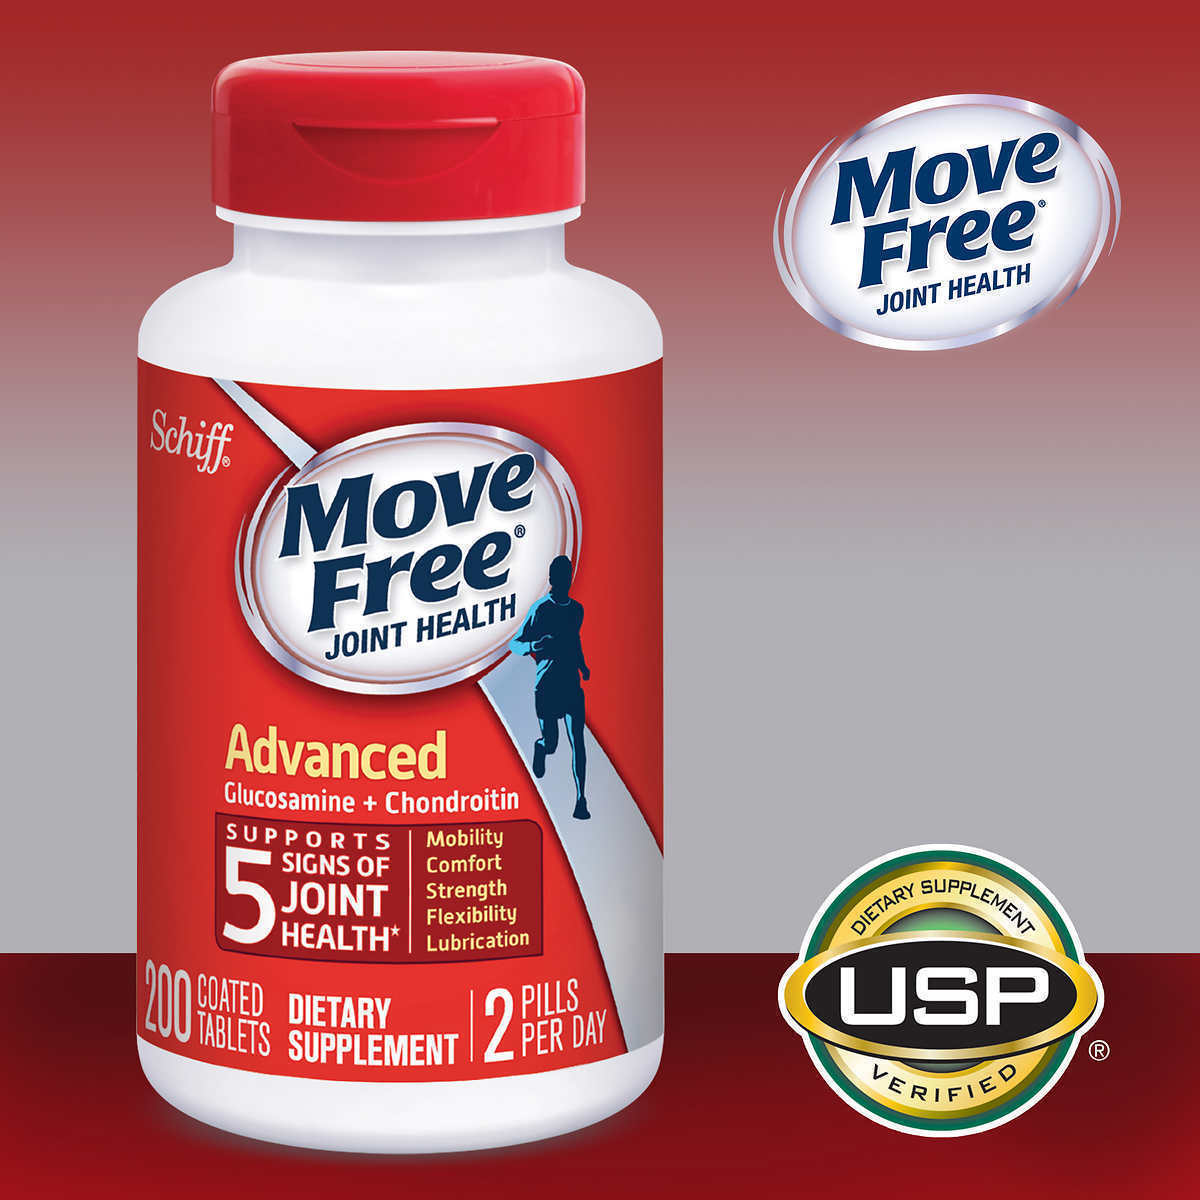 Schiff Move Free Advanced Triple Strength 200 Tablets, Joint Health, New